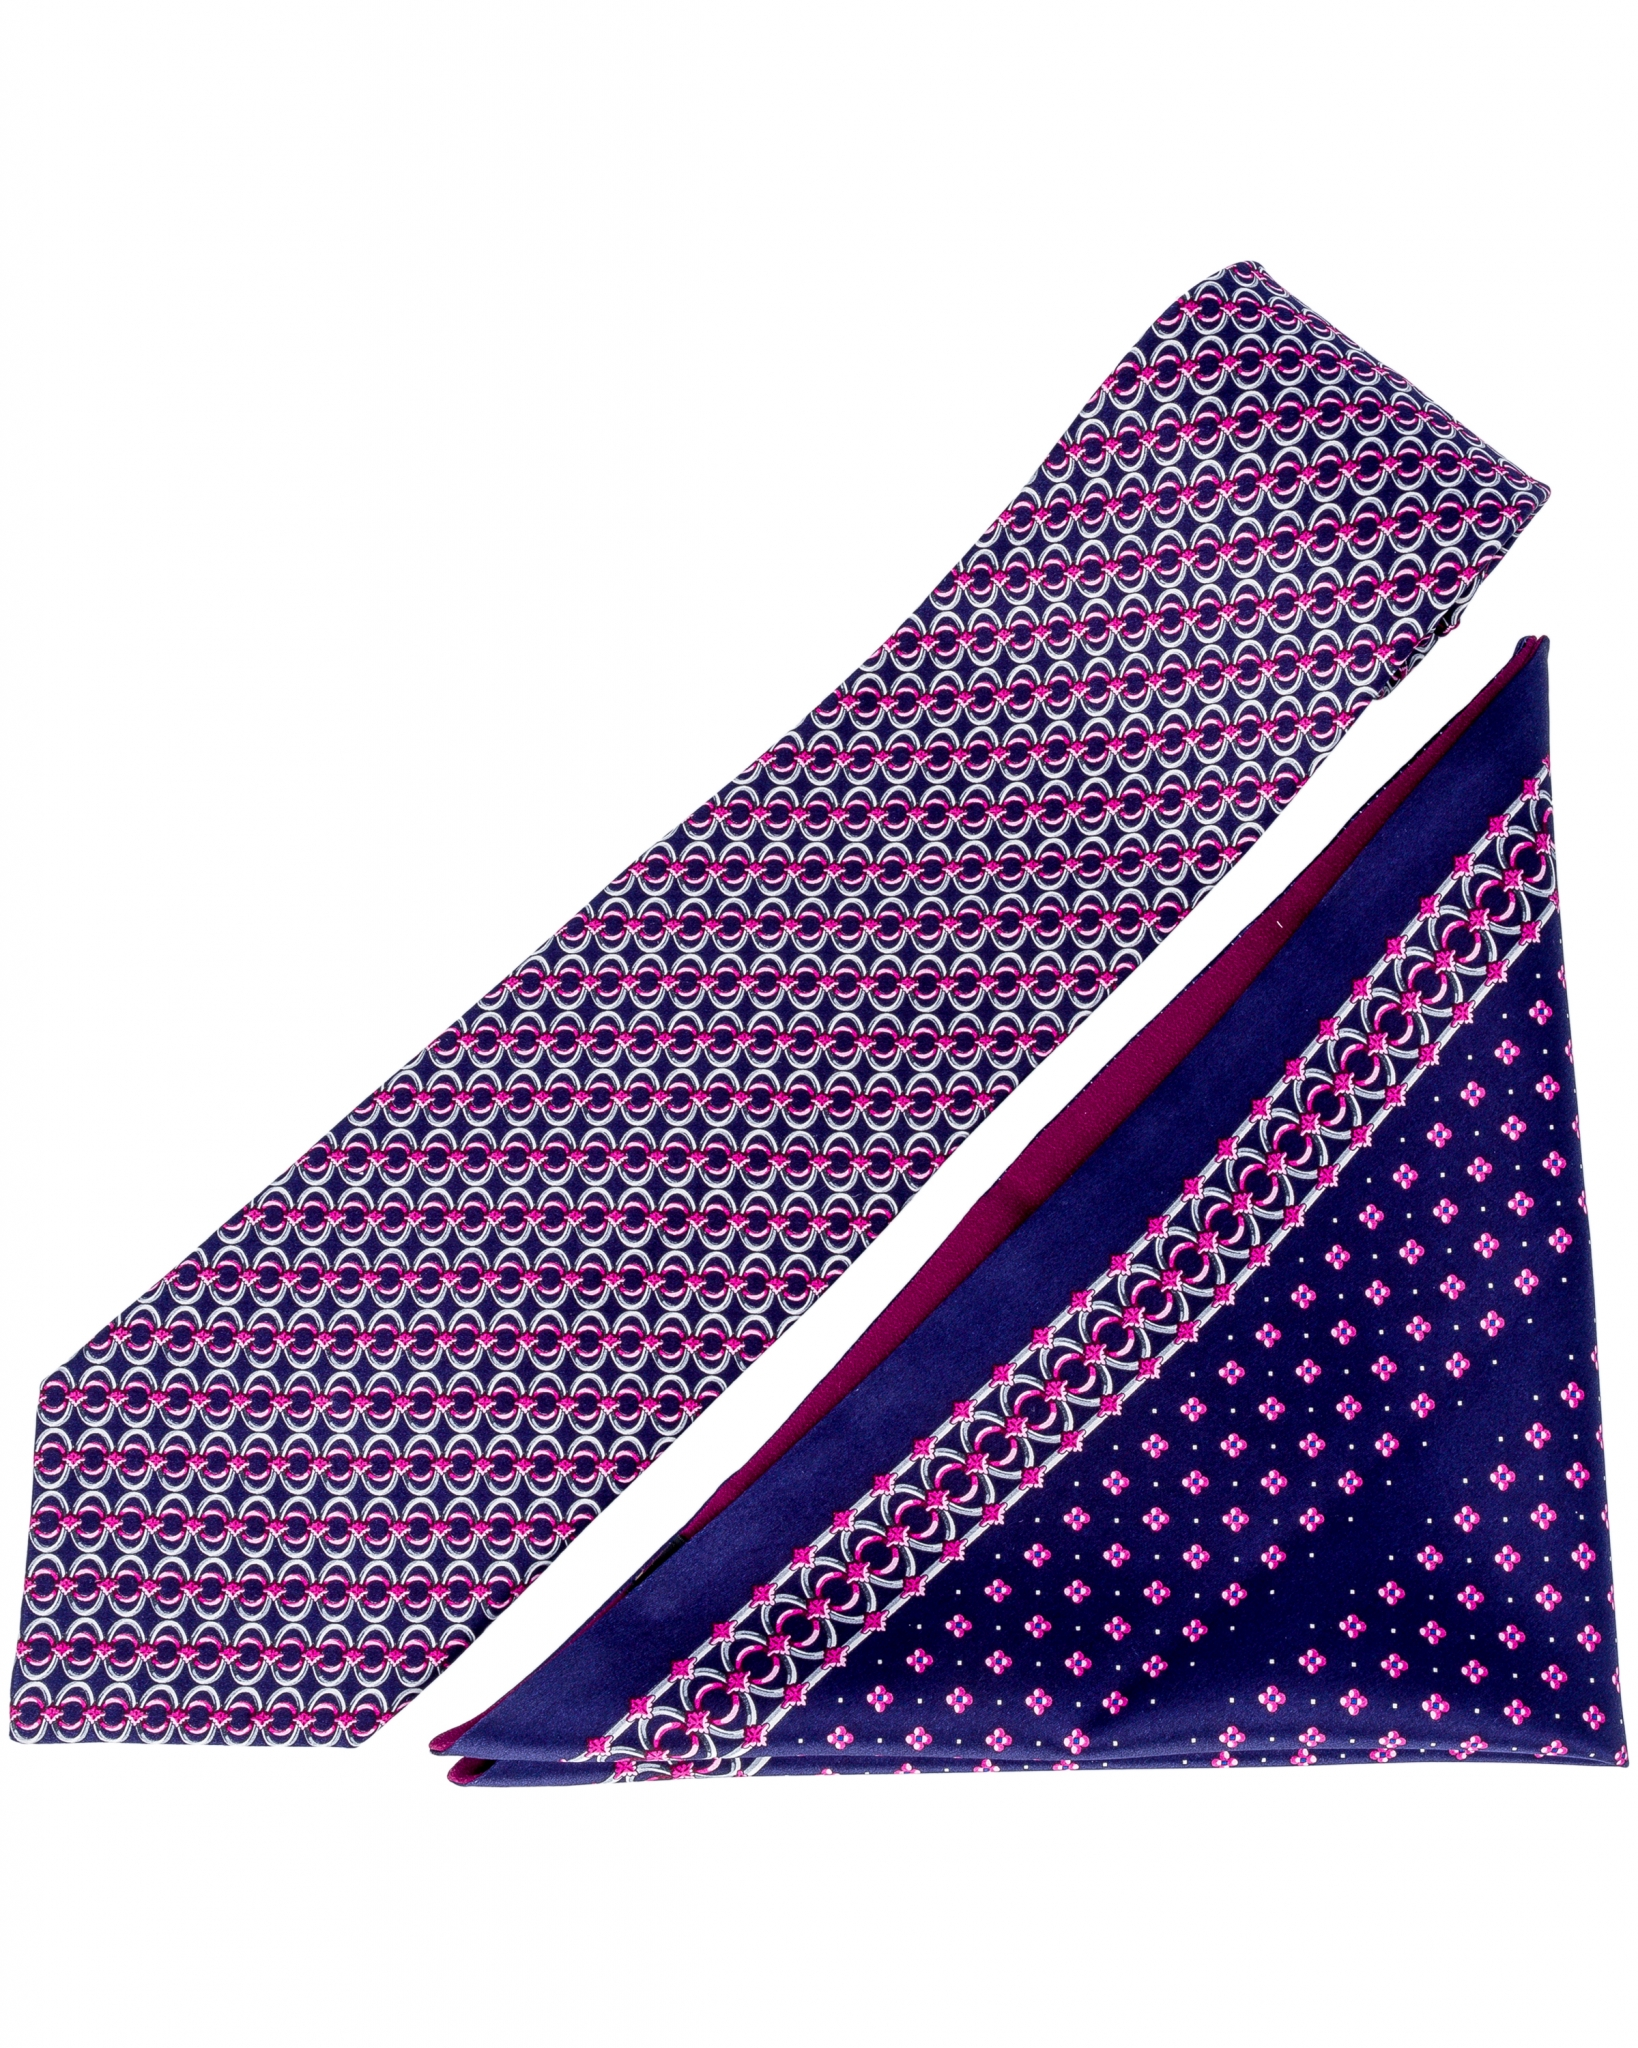 ZILLI – 100% Silk Tie & Pocket Square Set Navy Blue|Purple 4493V13